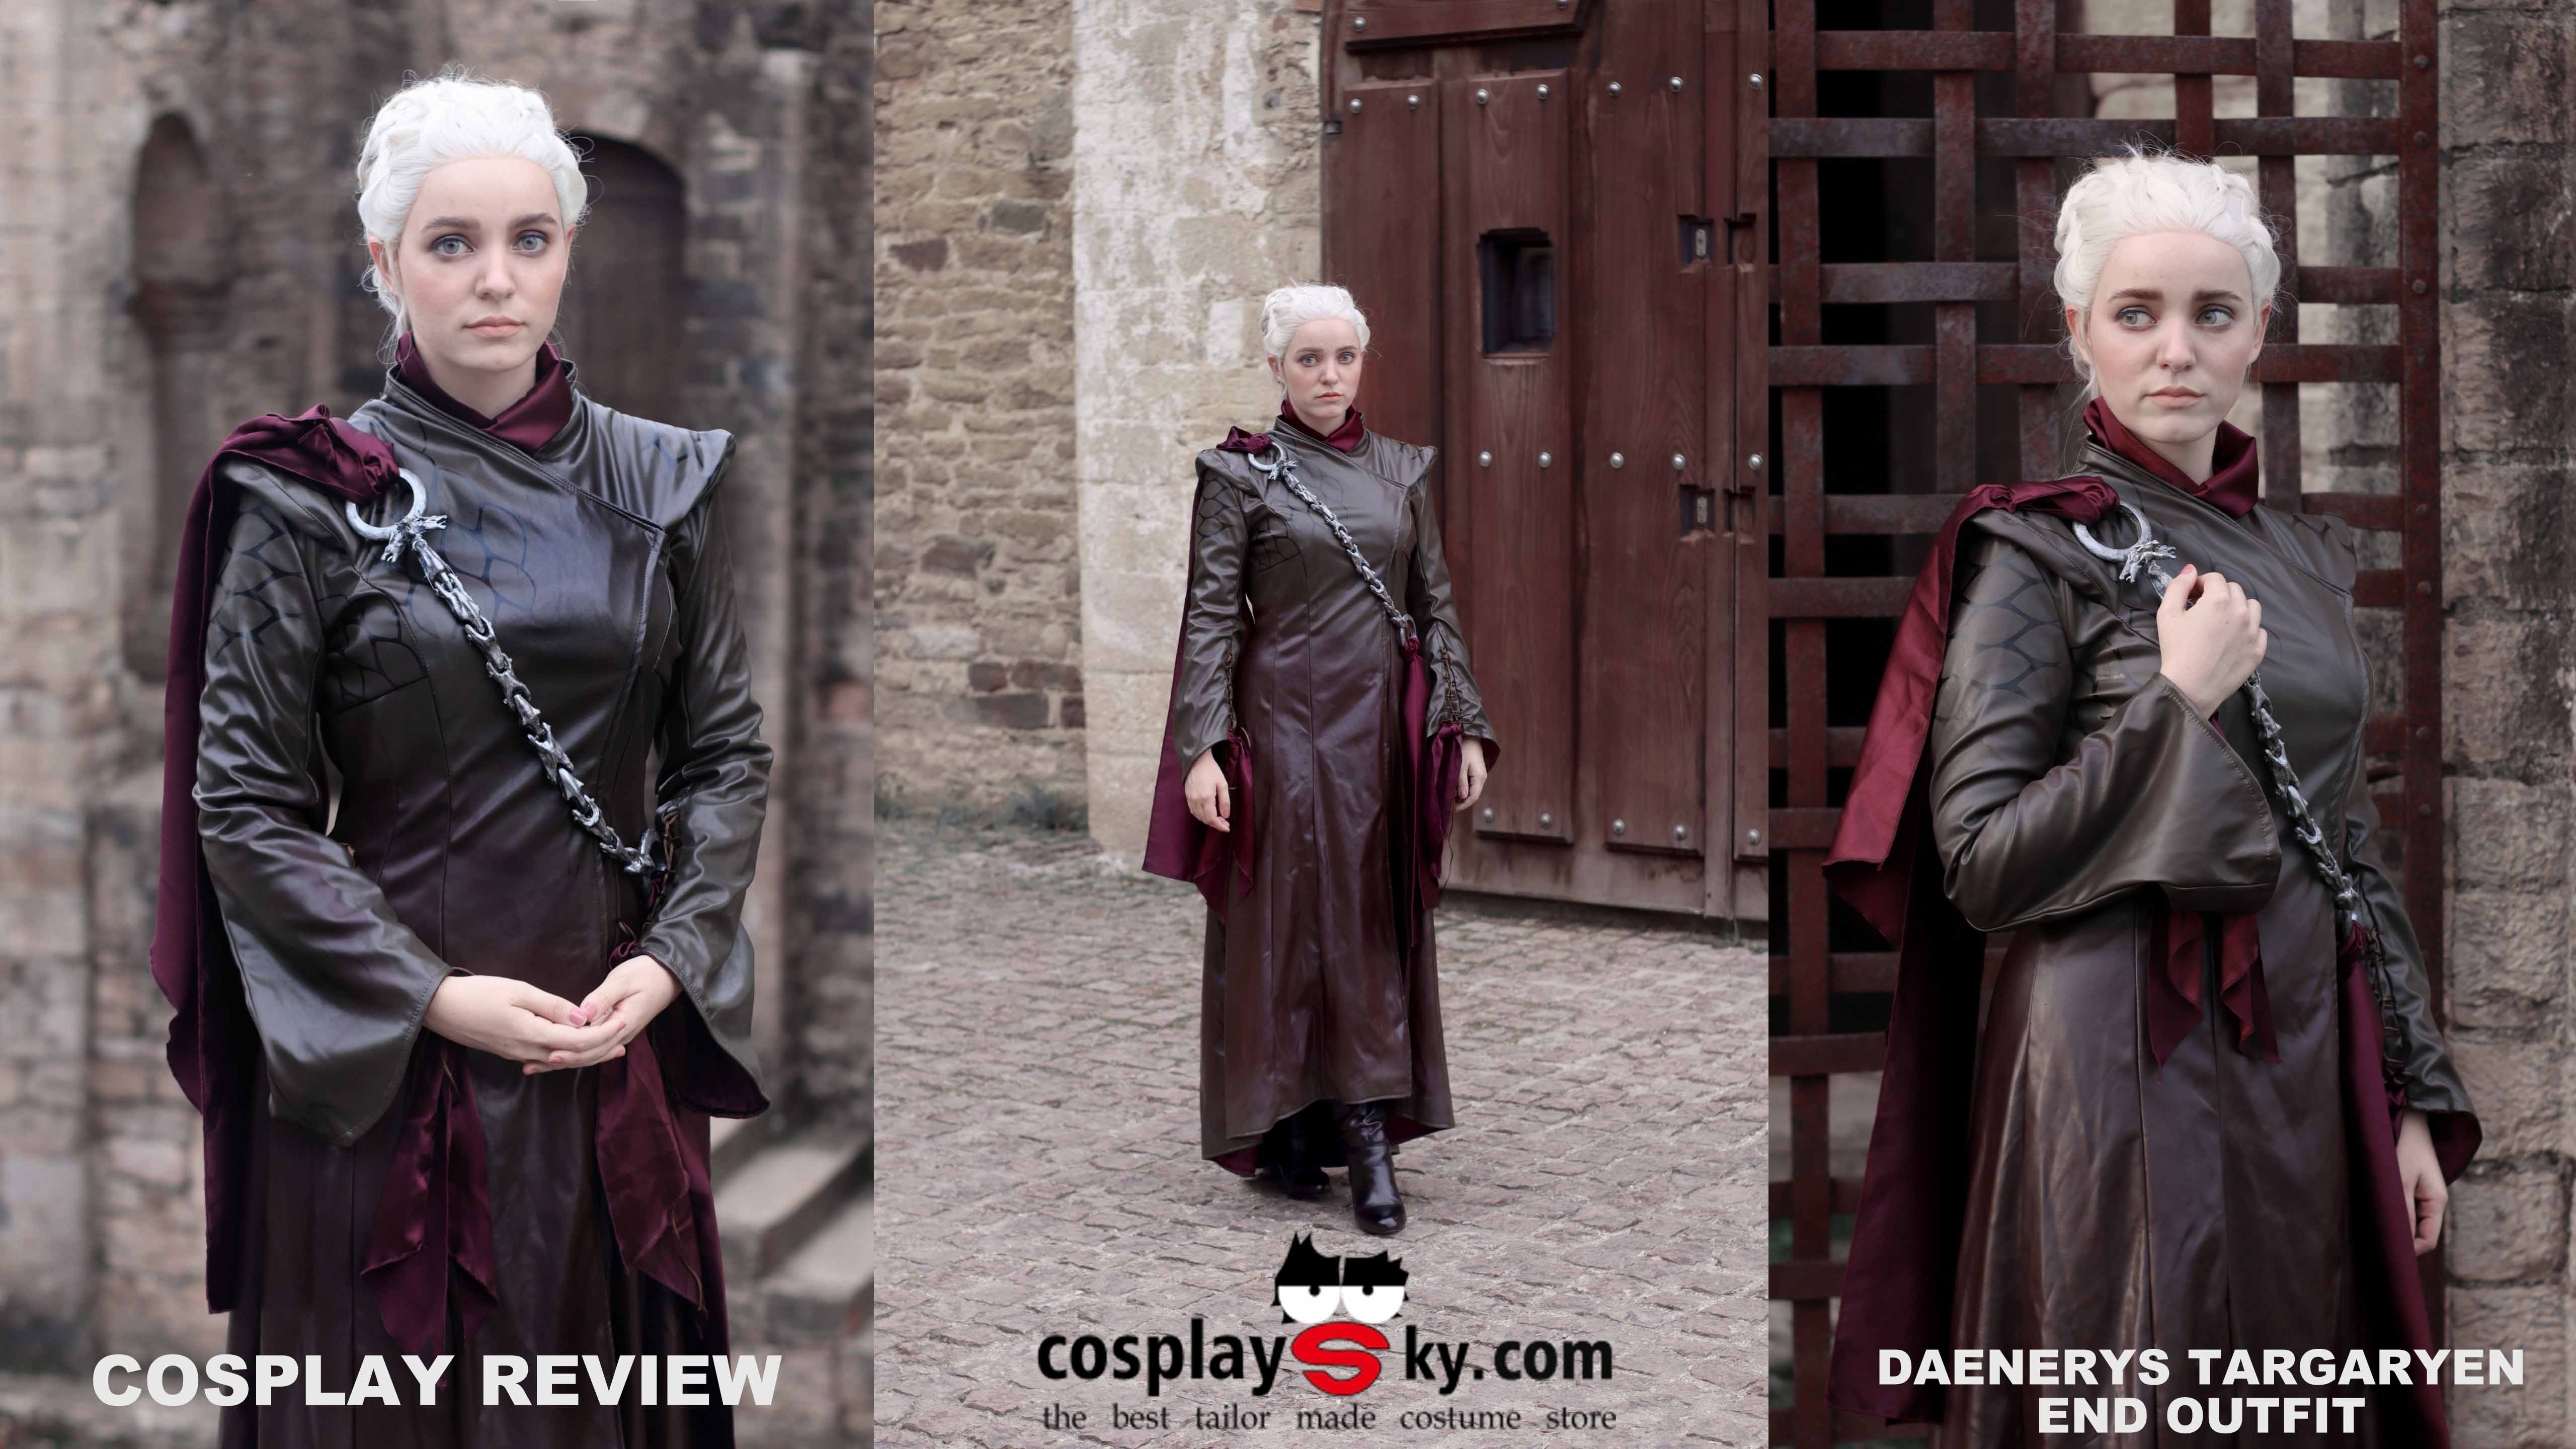 Cosplay Review: Daenerys Targaryen last outfit from Cosplaysky